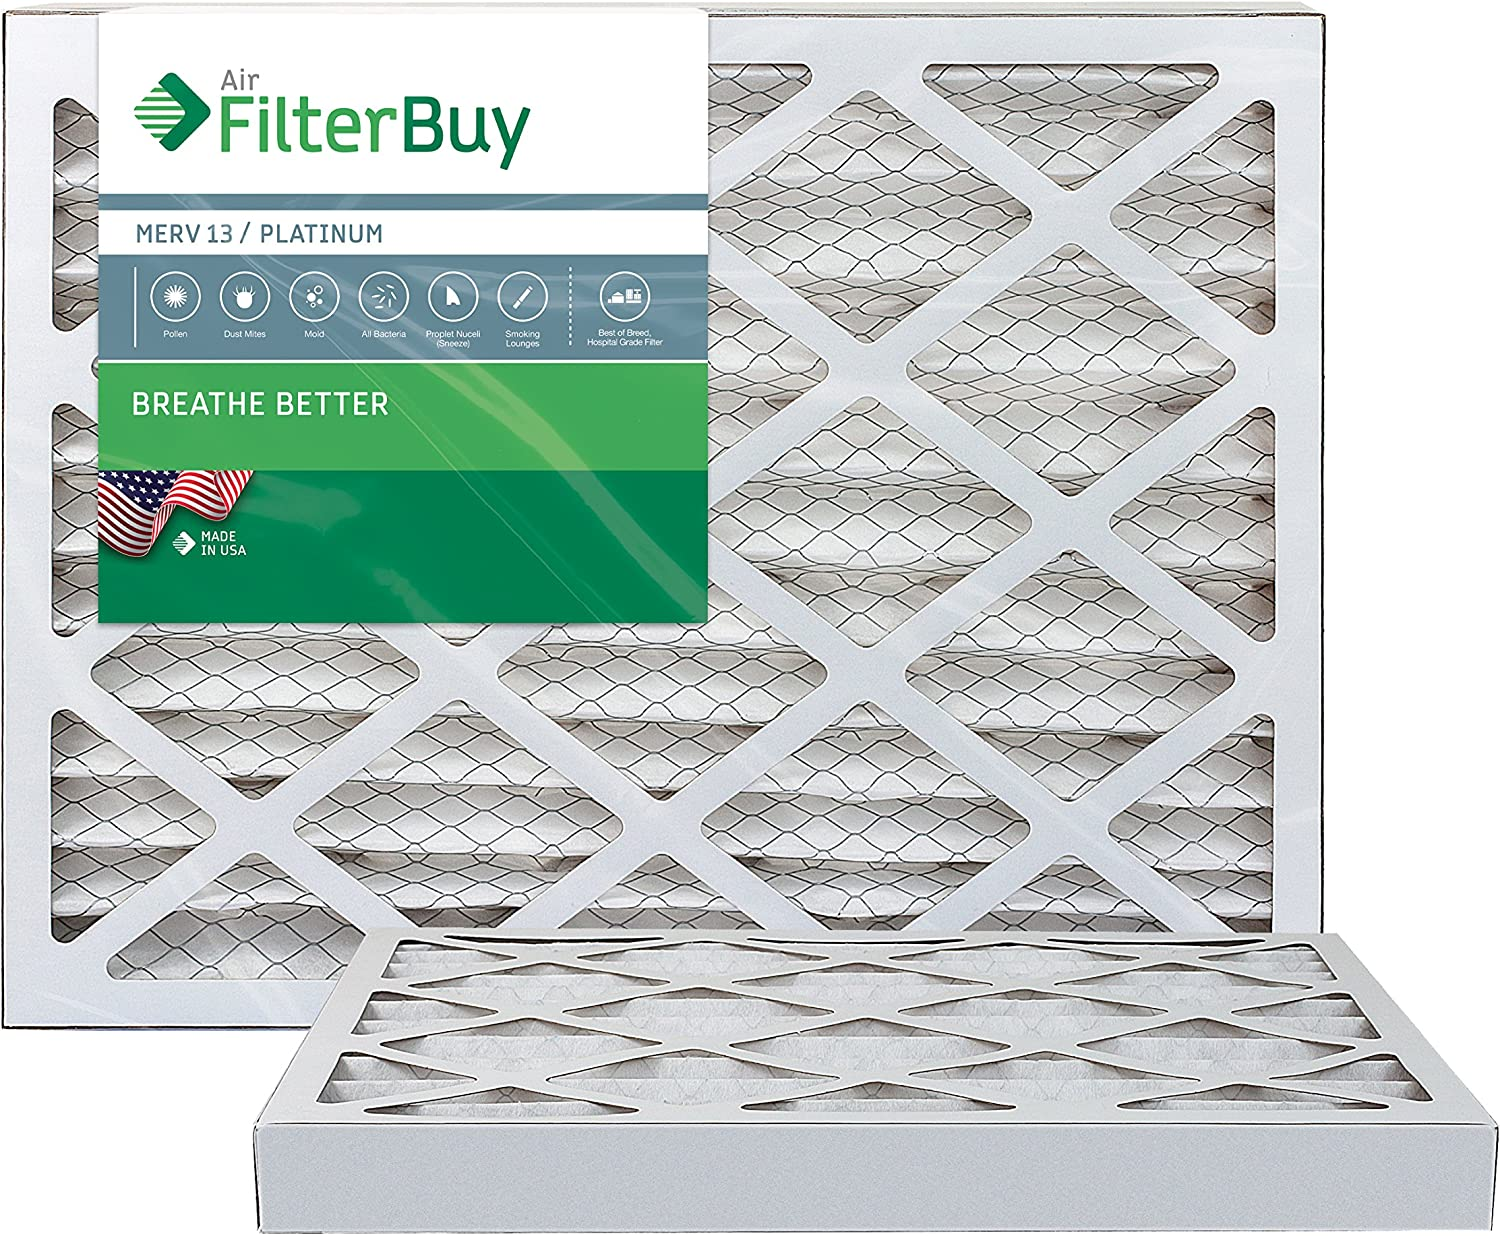 FilterBuy 20x25x2 MERV 13 Pleated AC Furnace Air Filter, (Pack of 2 Filters), 20x25x2 – Platinum